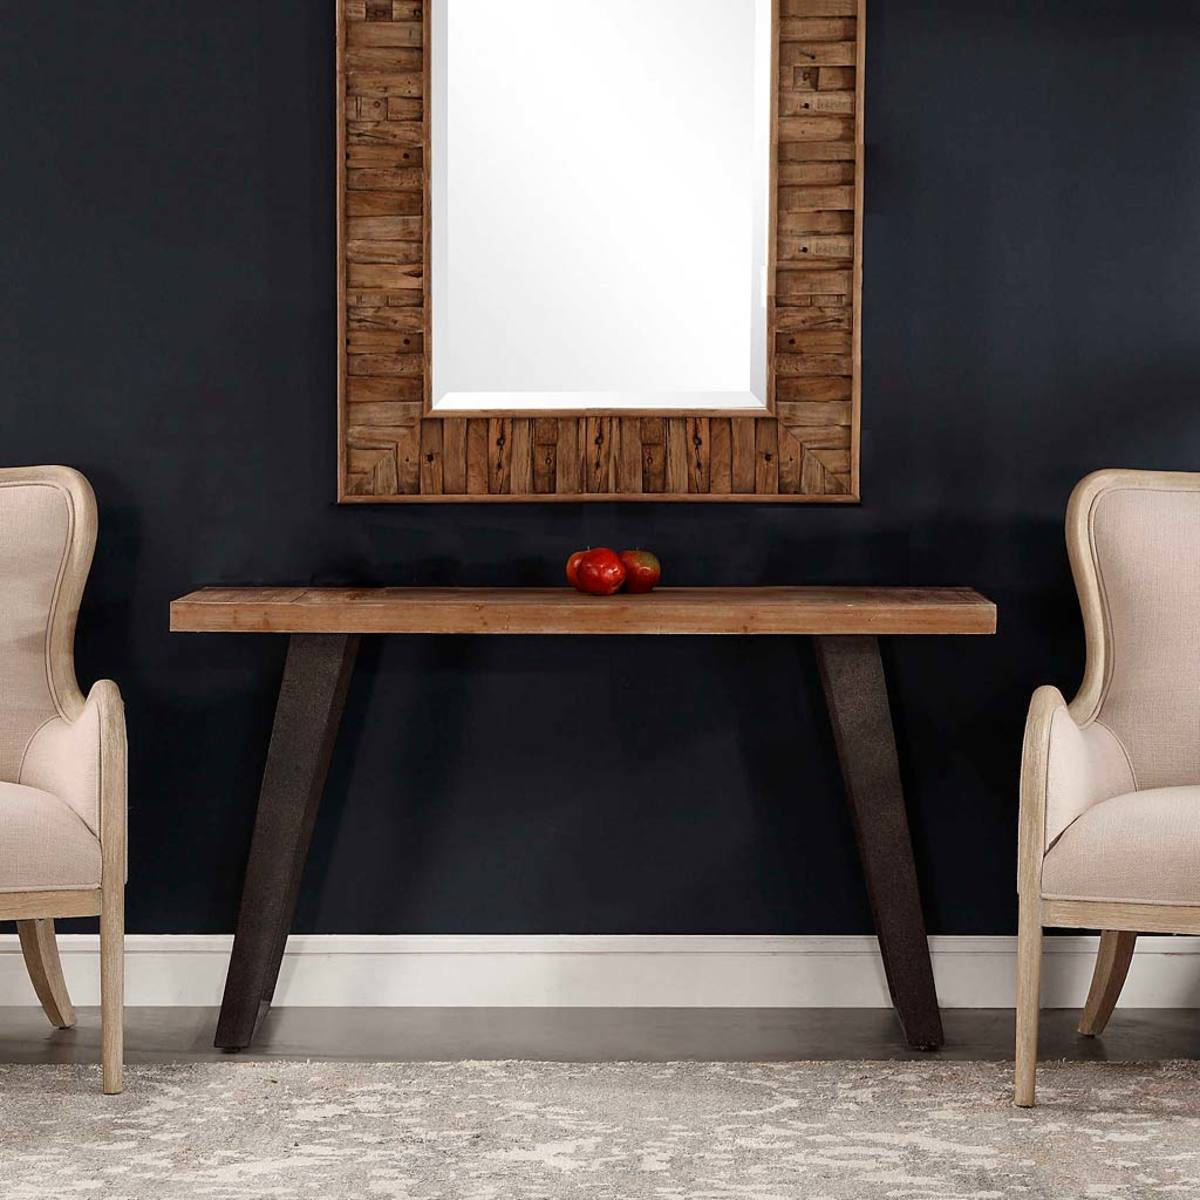 Fir Wood Console Table with Metal Legs